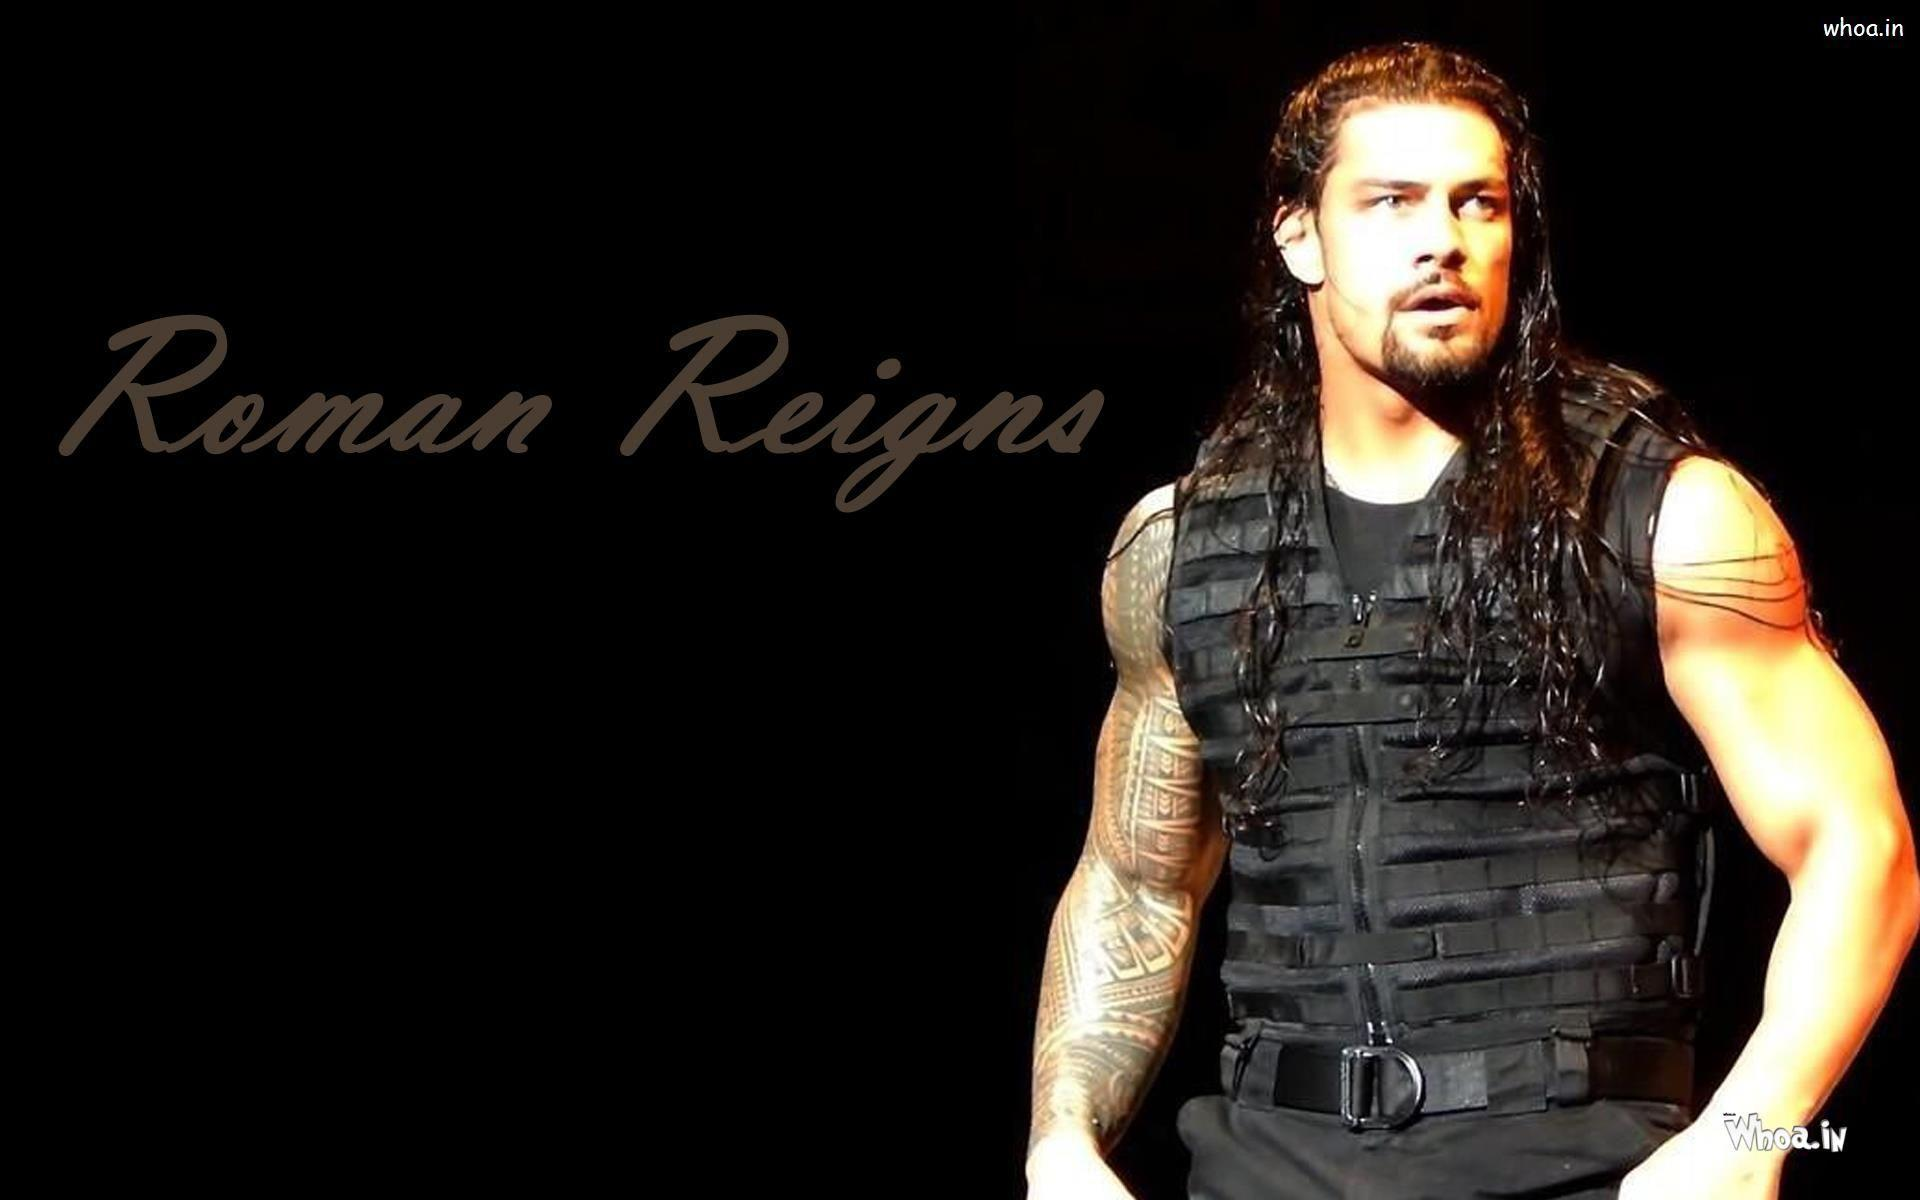 Roman Reigns HD Wallpaper 2016 - WallpaperSafari